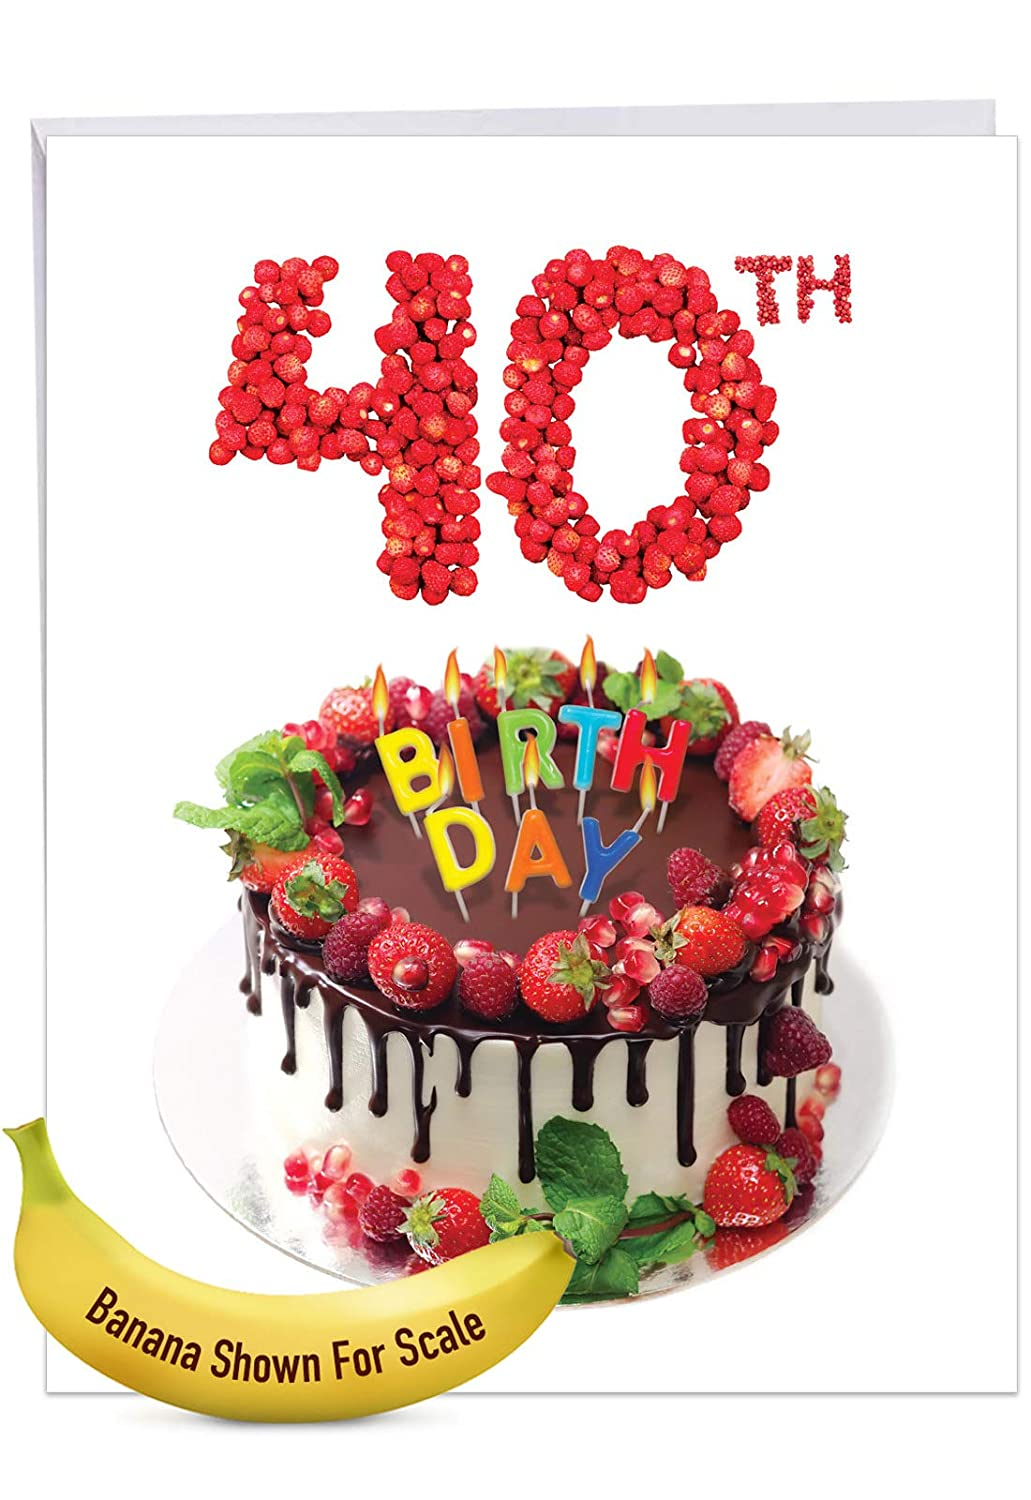 Jumbo Milestone Birthday Card Big Day 40 Featuring Photographs Of Fantastically Frosted And Colorful Cakes With Envelope Large Size 85 X 11